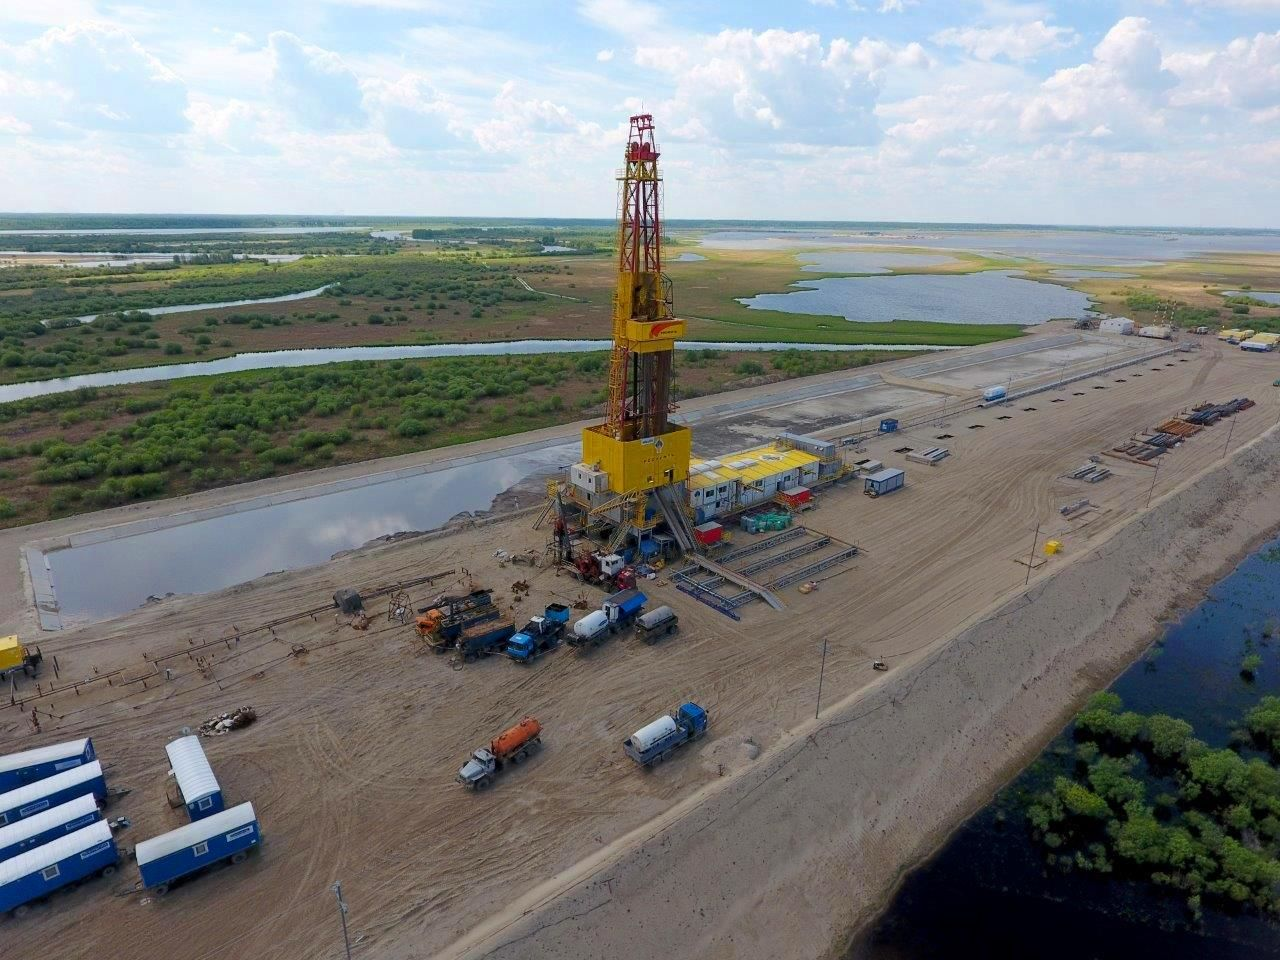 Mirrico group contributed to the record results in daily drilling progress of RN-Yuganskneftegaz LLC